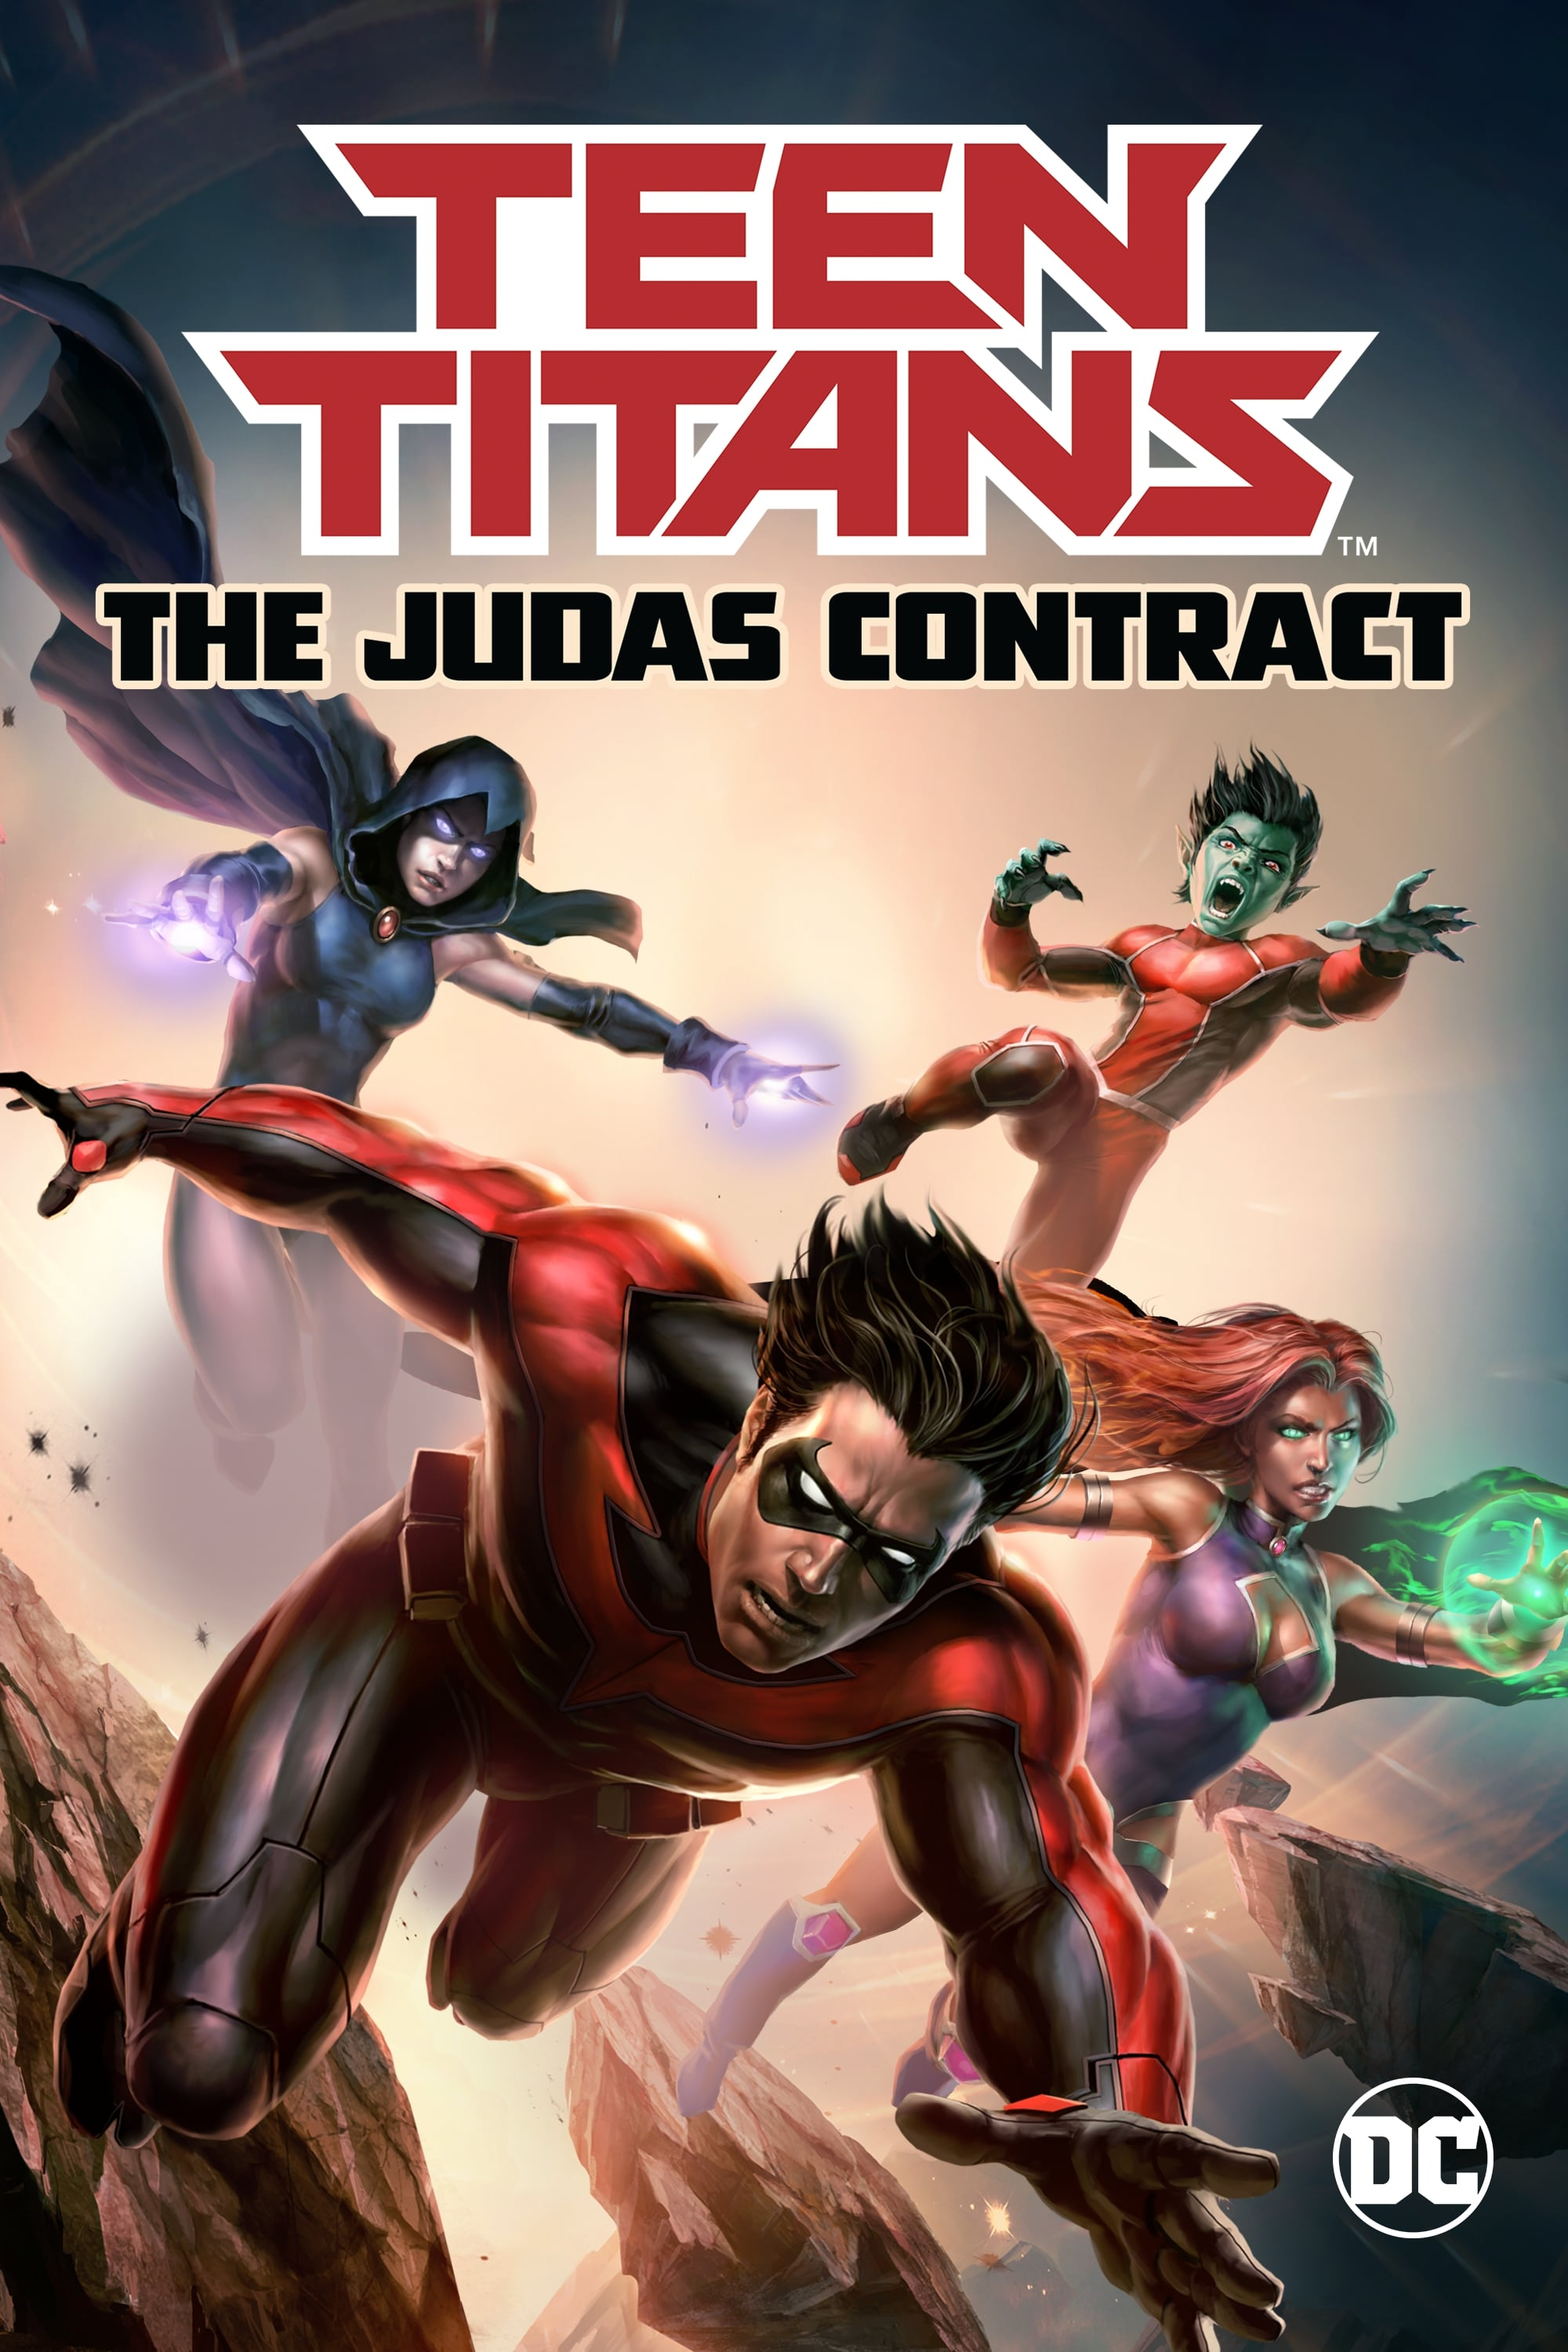 Jaunieji Titanai / Teen Titans: The Judas Contract (2017)